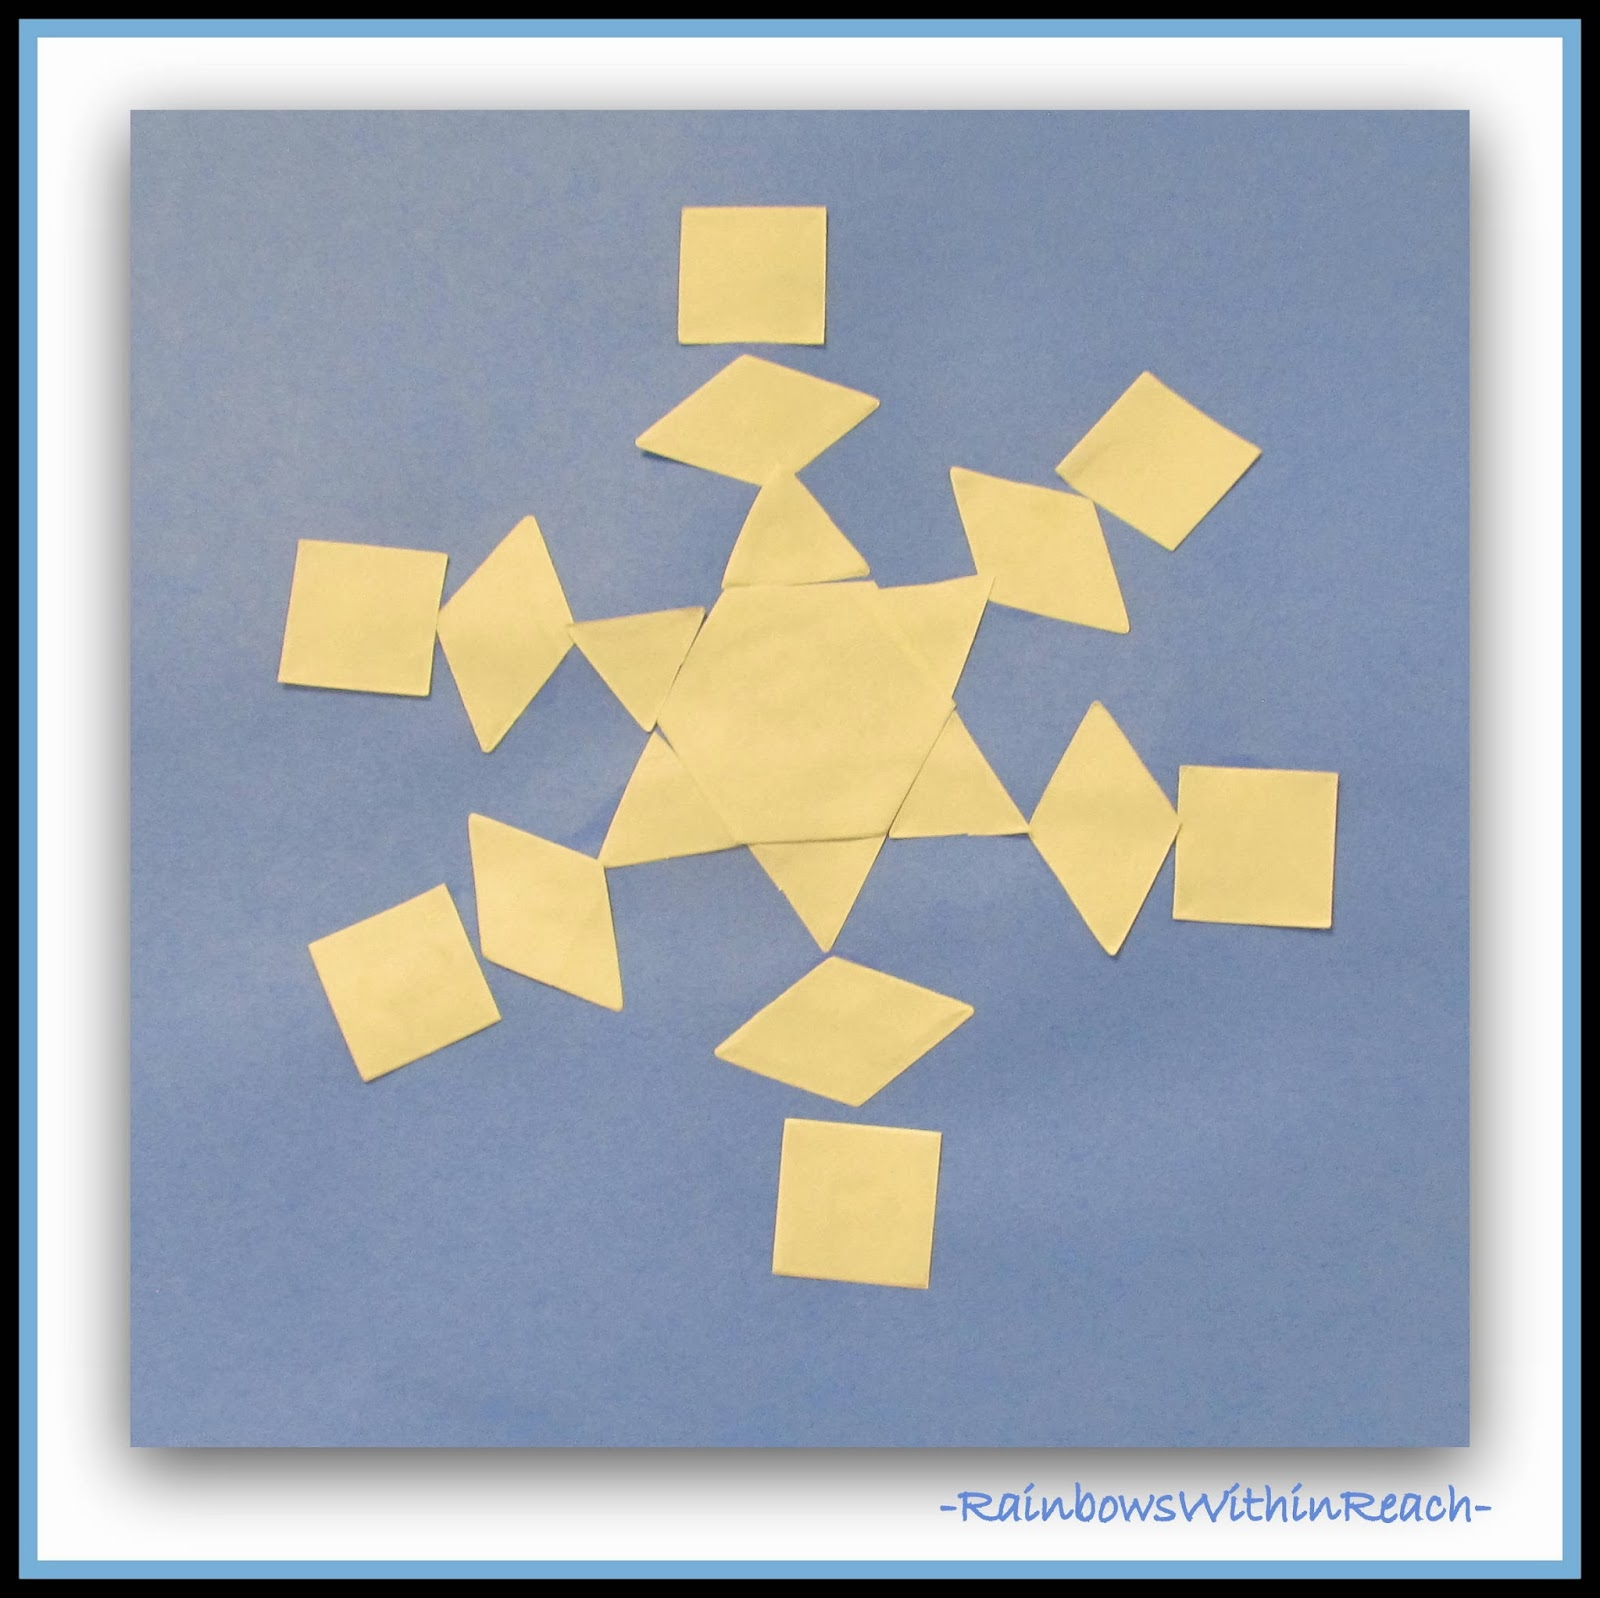 Kindergarten Math Meets Art: Snowflake Symmetry via RainbowsWithinReach